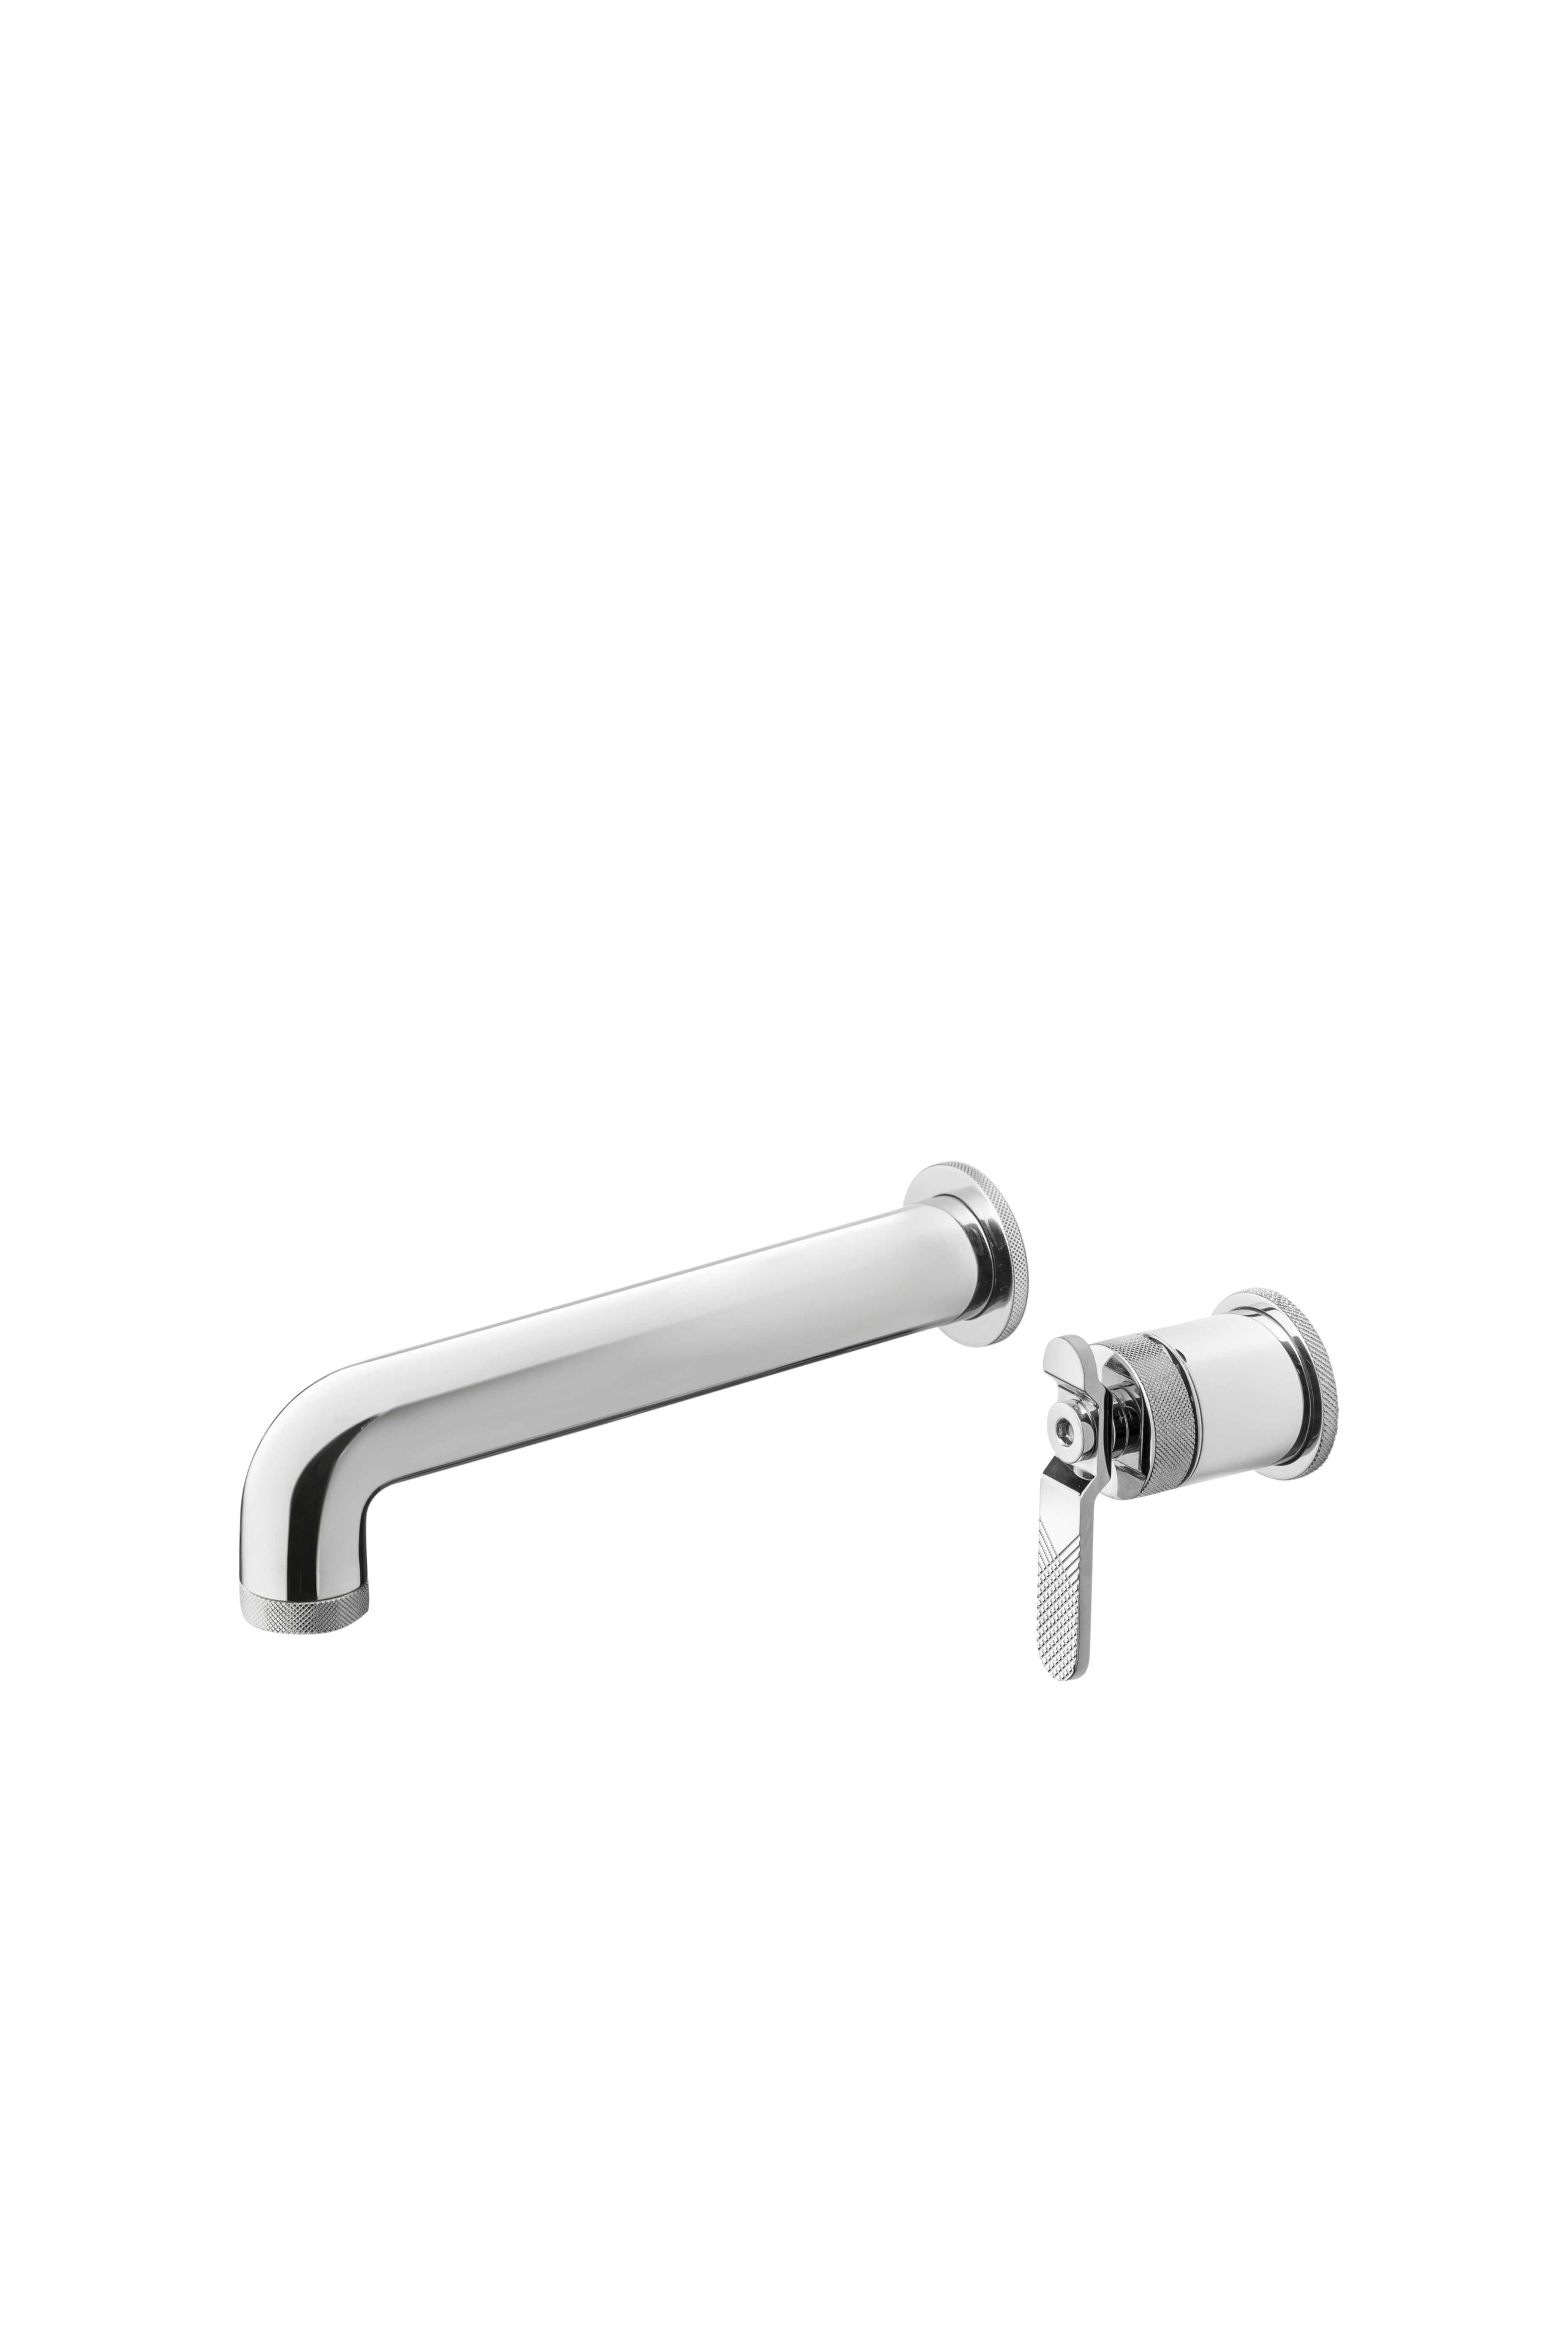 KB2206 Bold Lever Wall Mount Basin Mixer